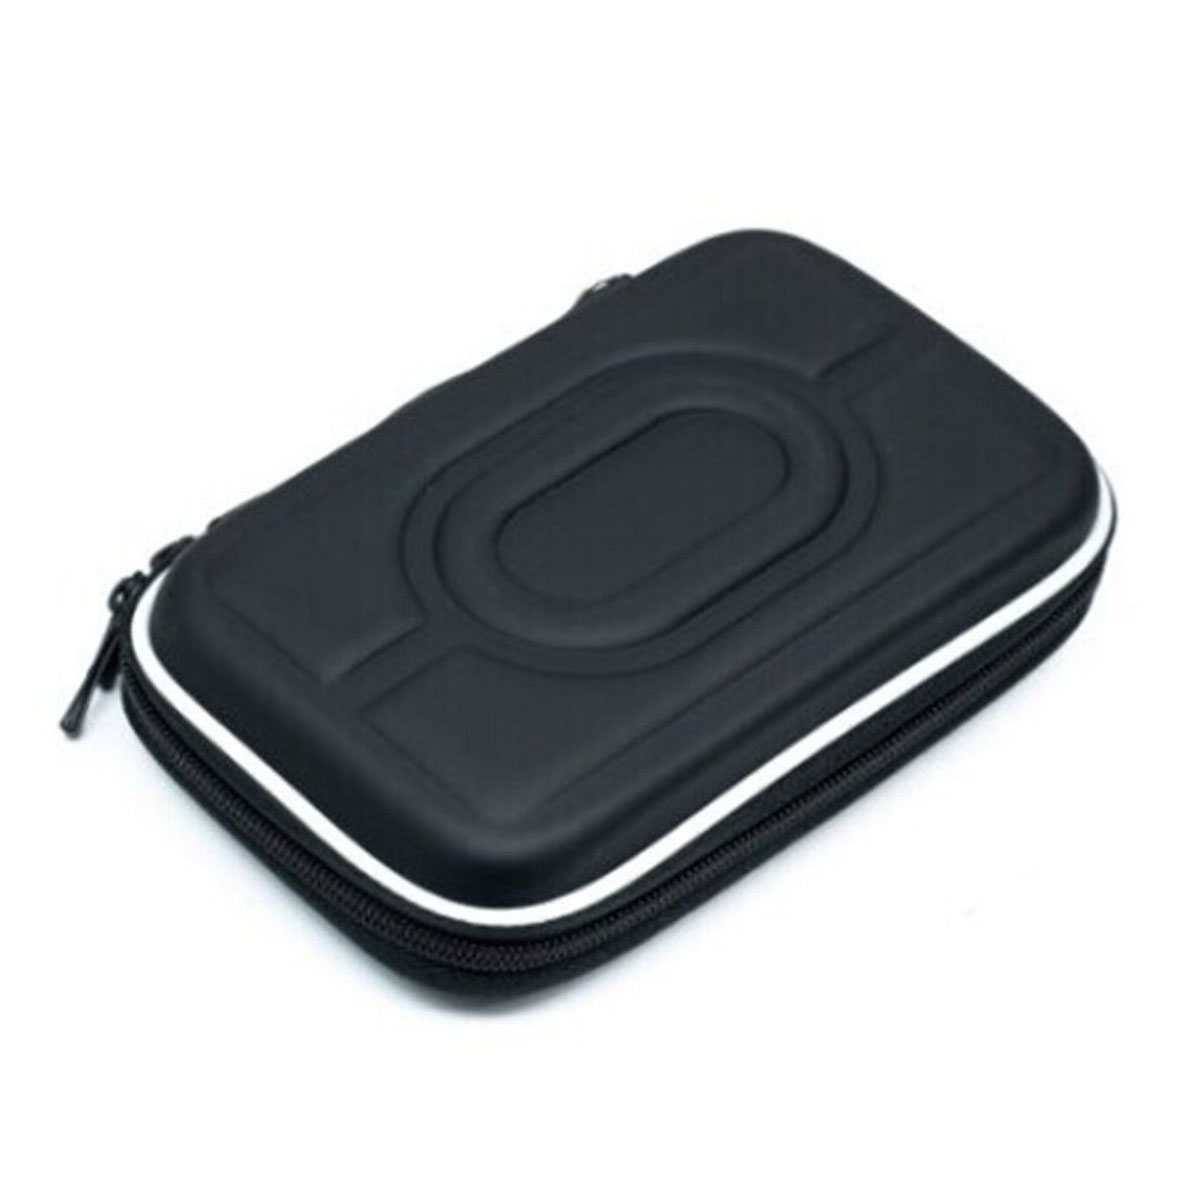 "Laptop hard drive,2.5"" External Case Pouch For PC Laptop USB Hard Drive Disk H"